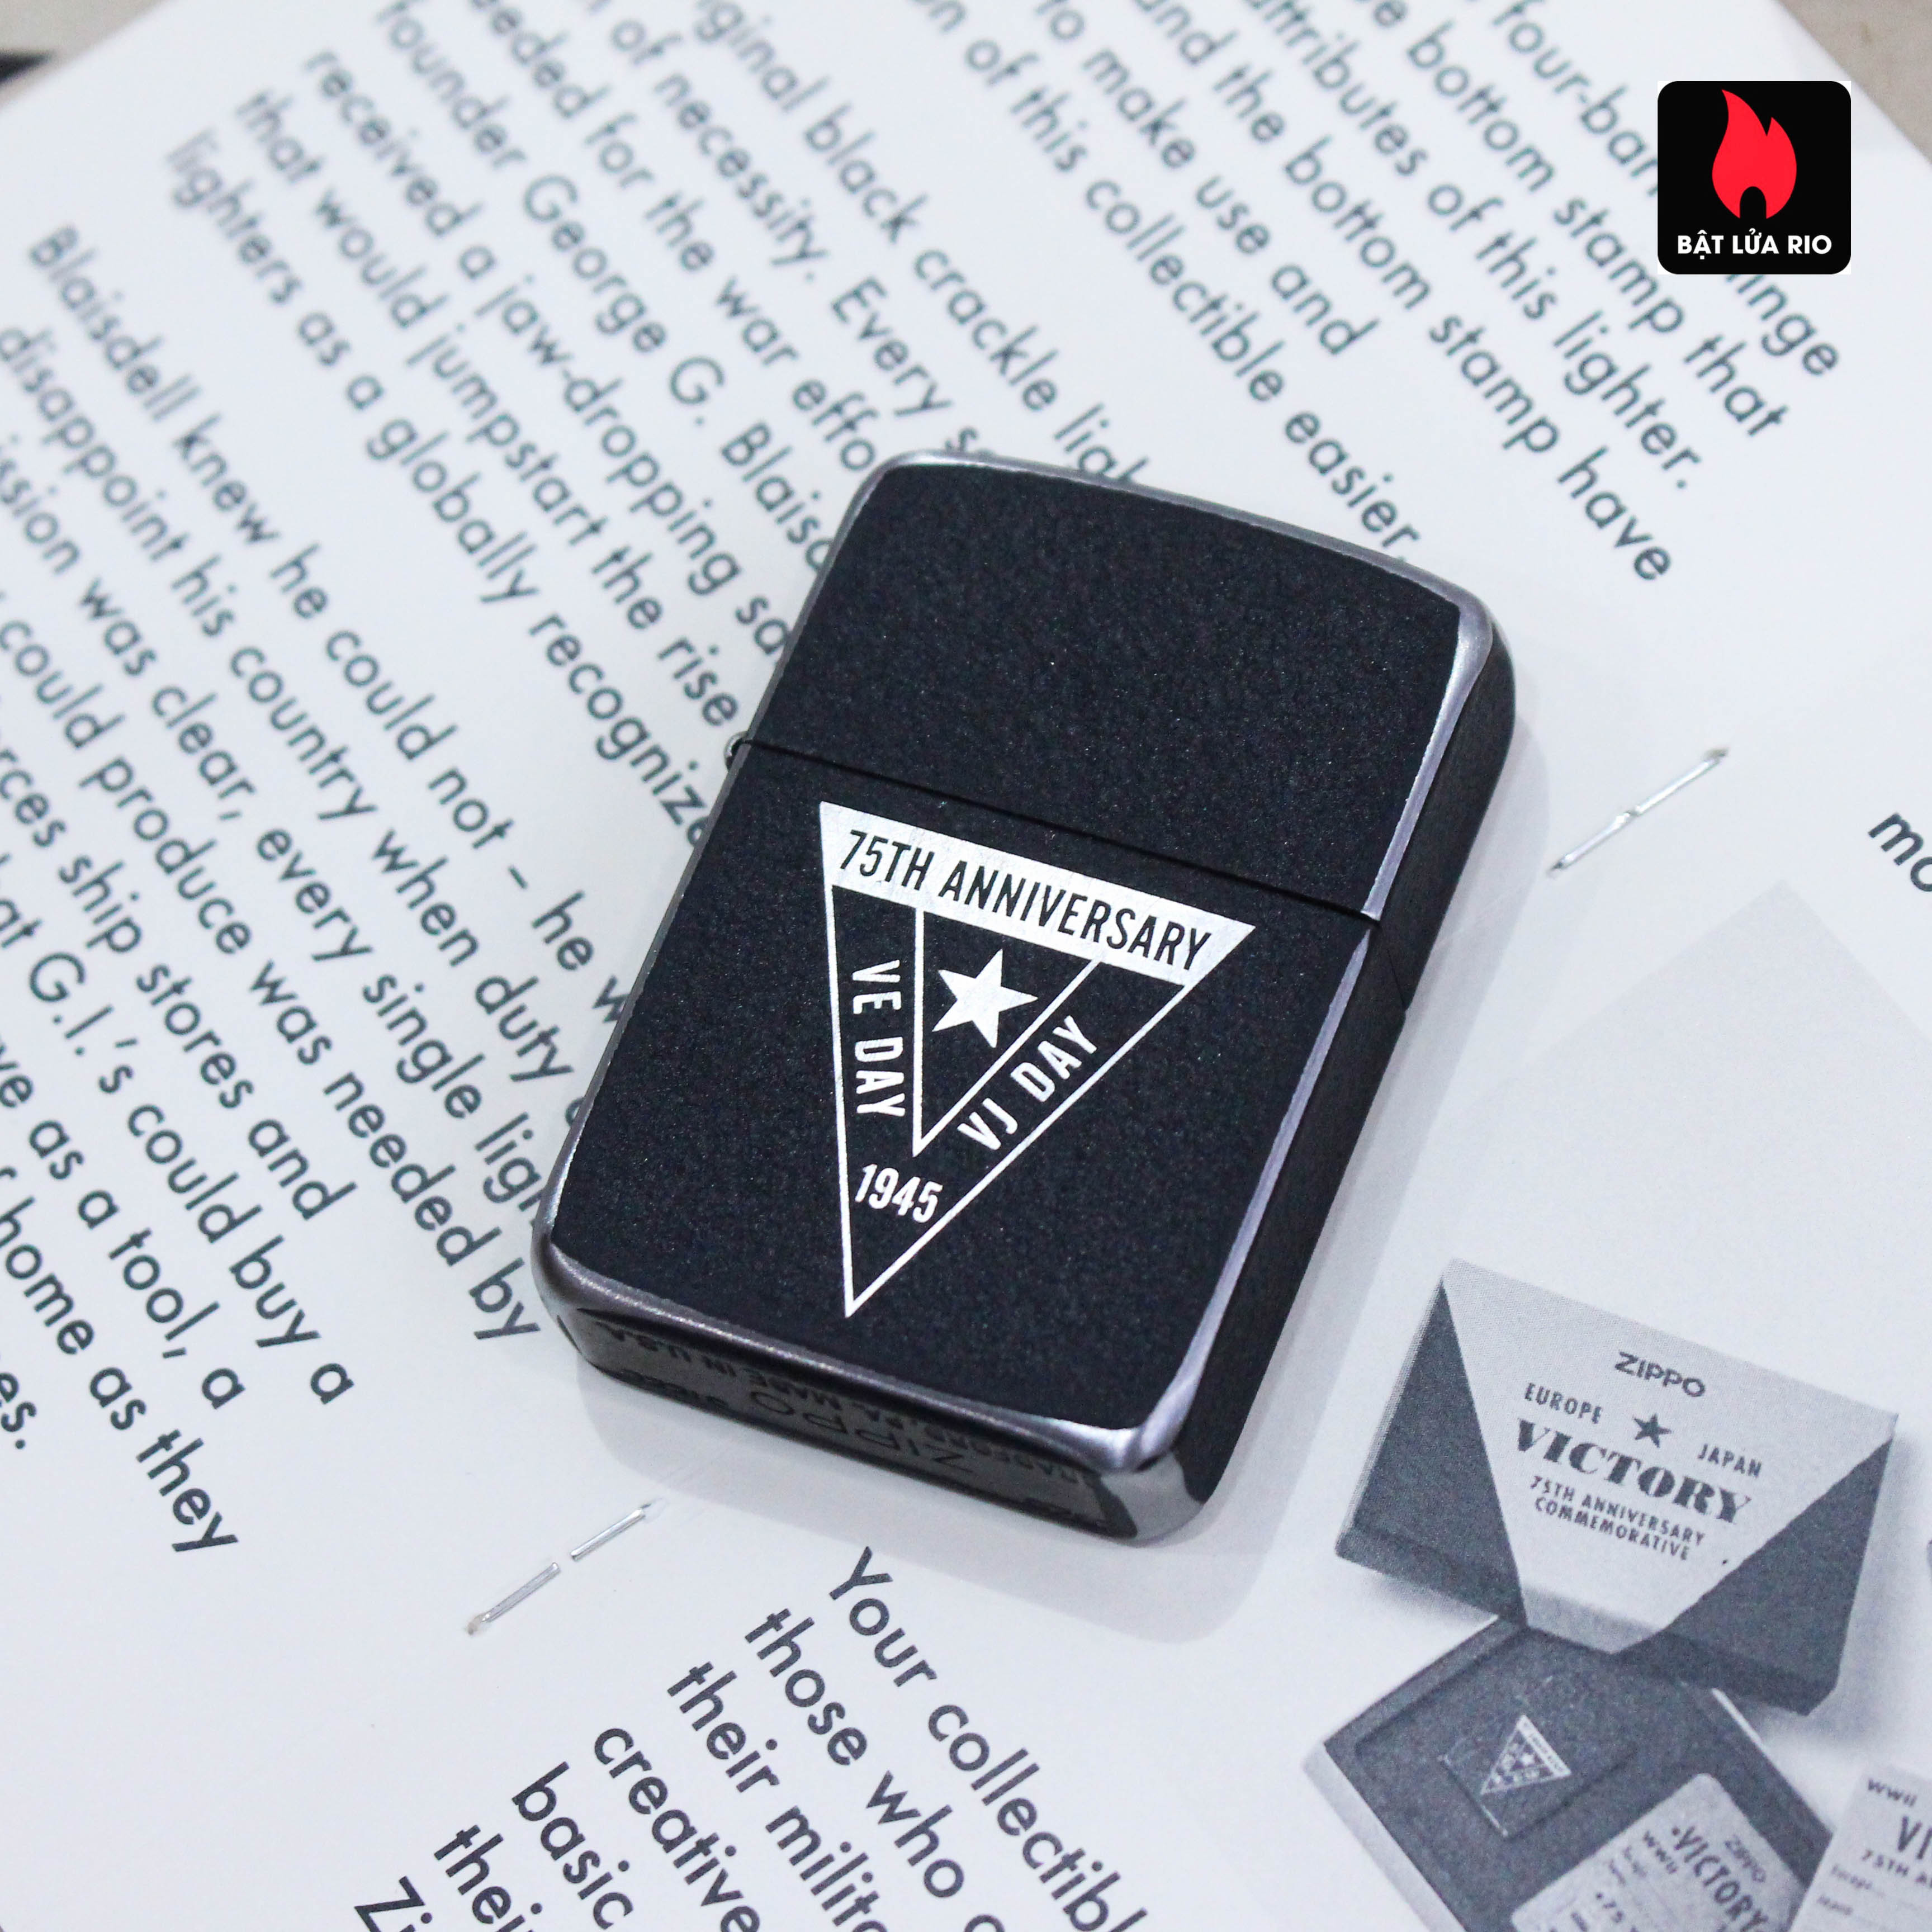 Zippo VE/VJ 75th Anniversary Collectible Steel Case - Zippo Victory in Europe & Japan Collectible Lighter - Zippo 49264 58